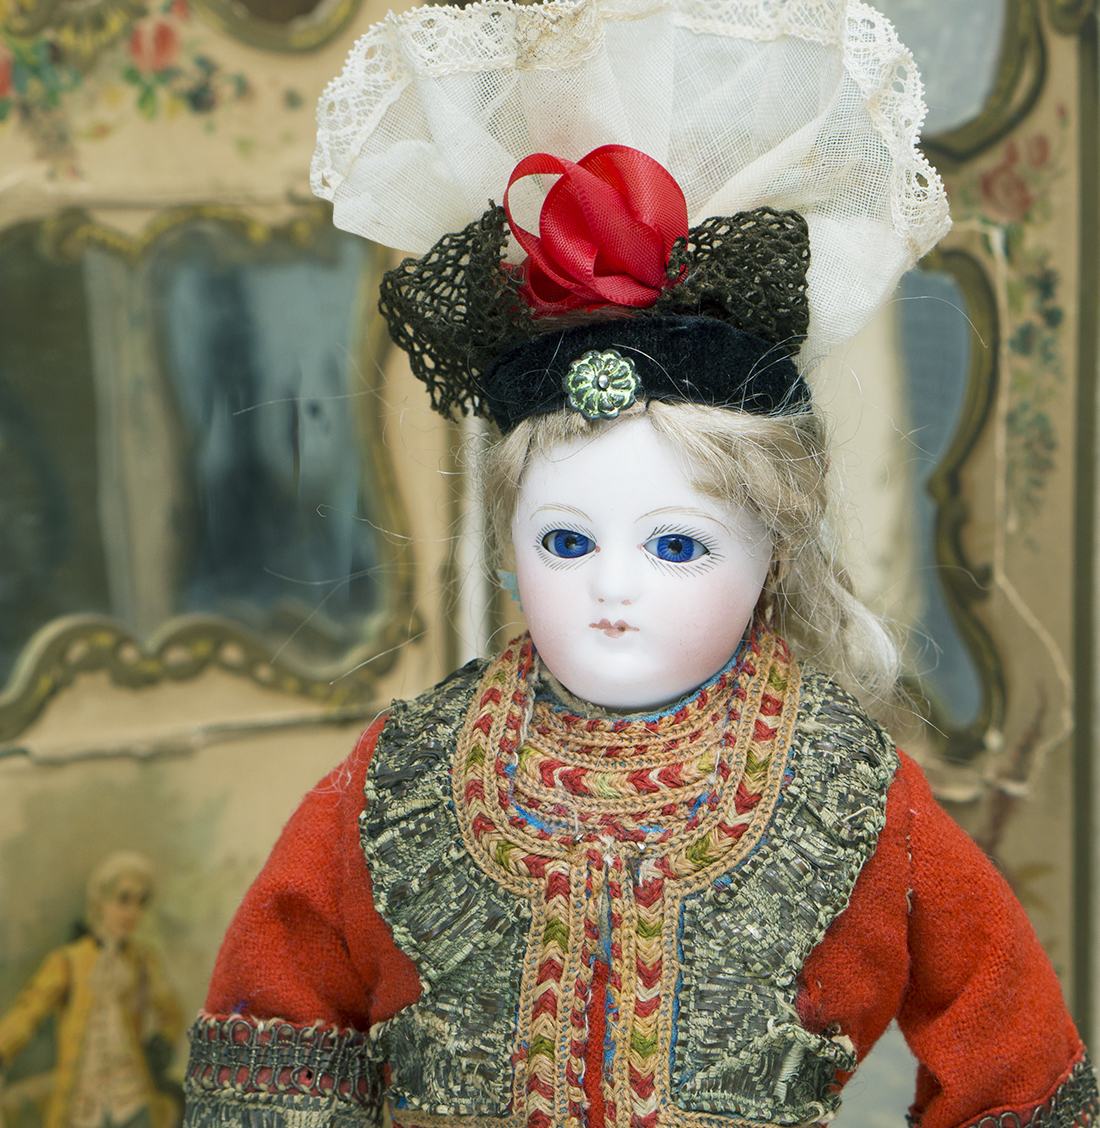 Small fashion doll 27cm